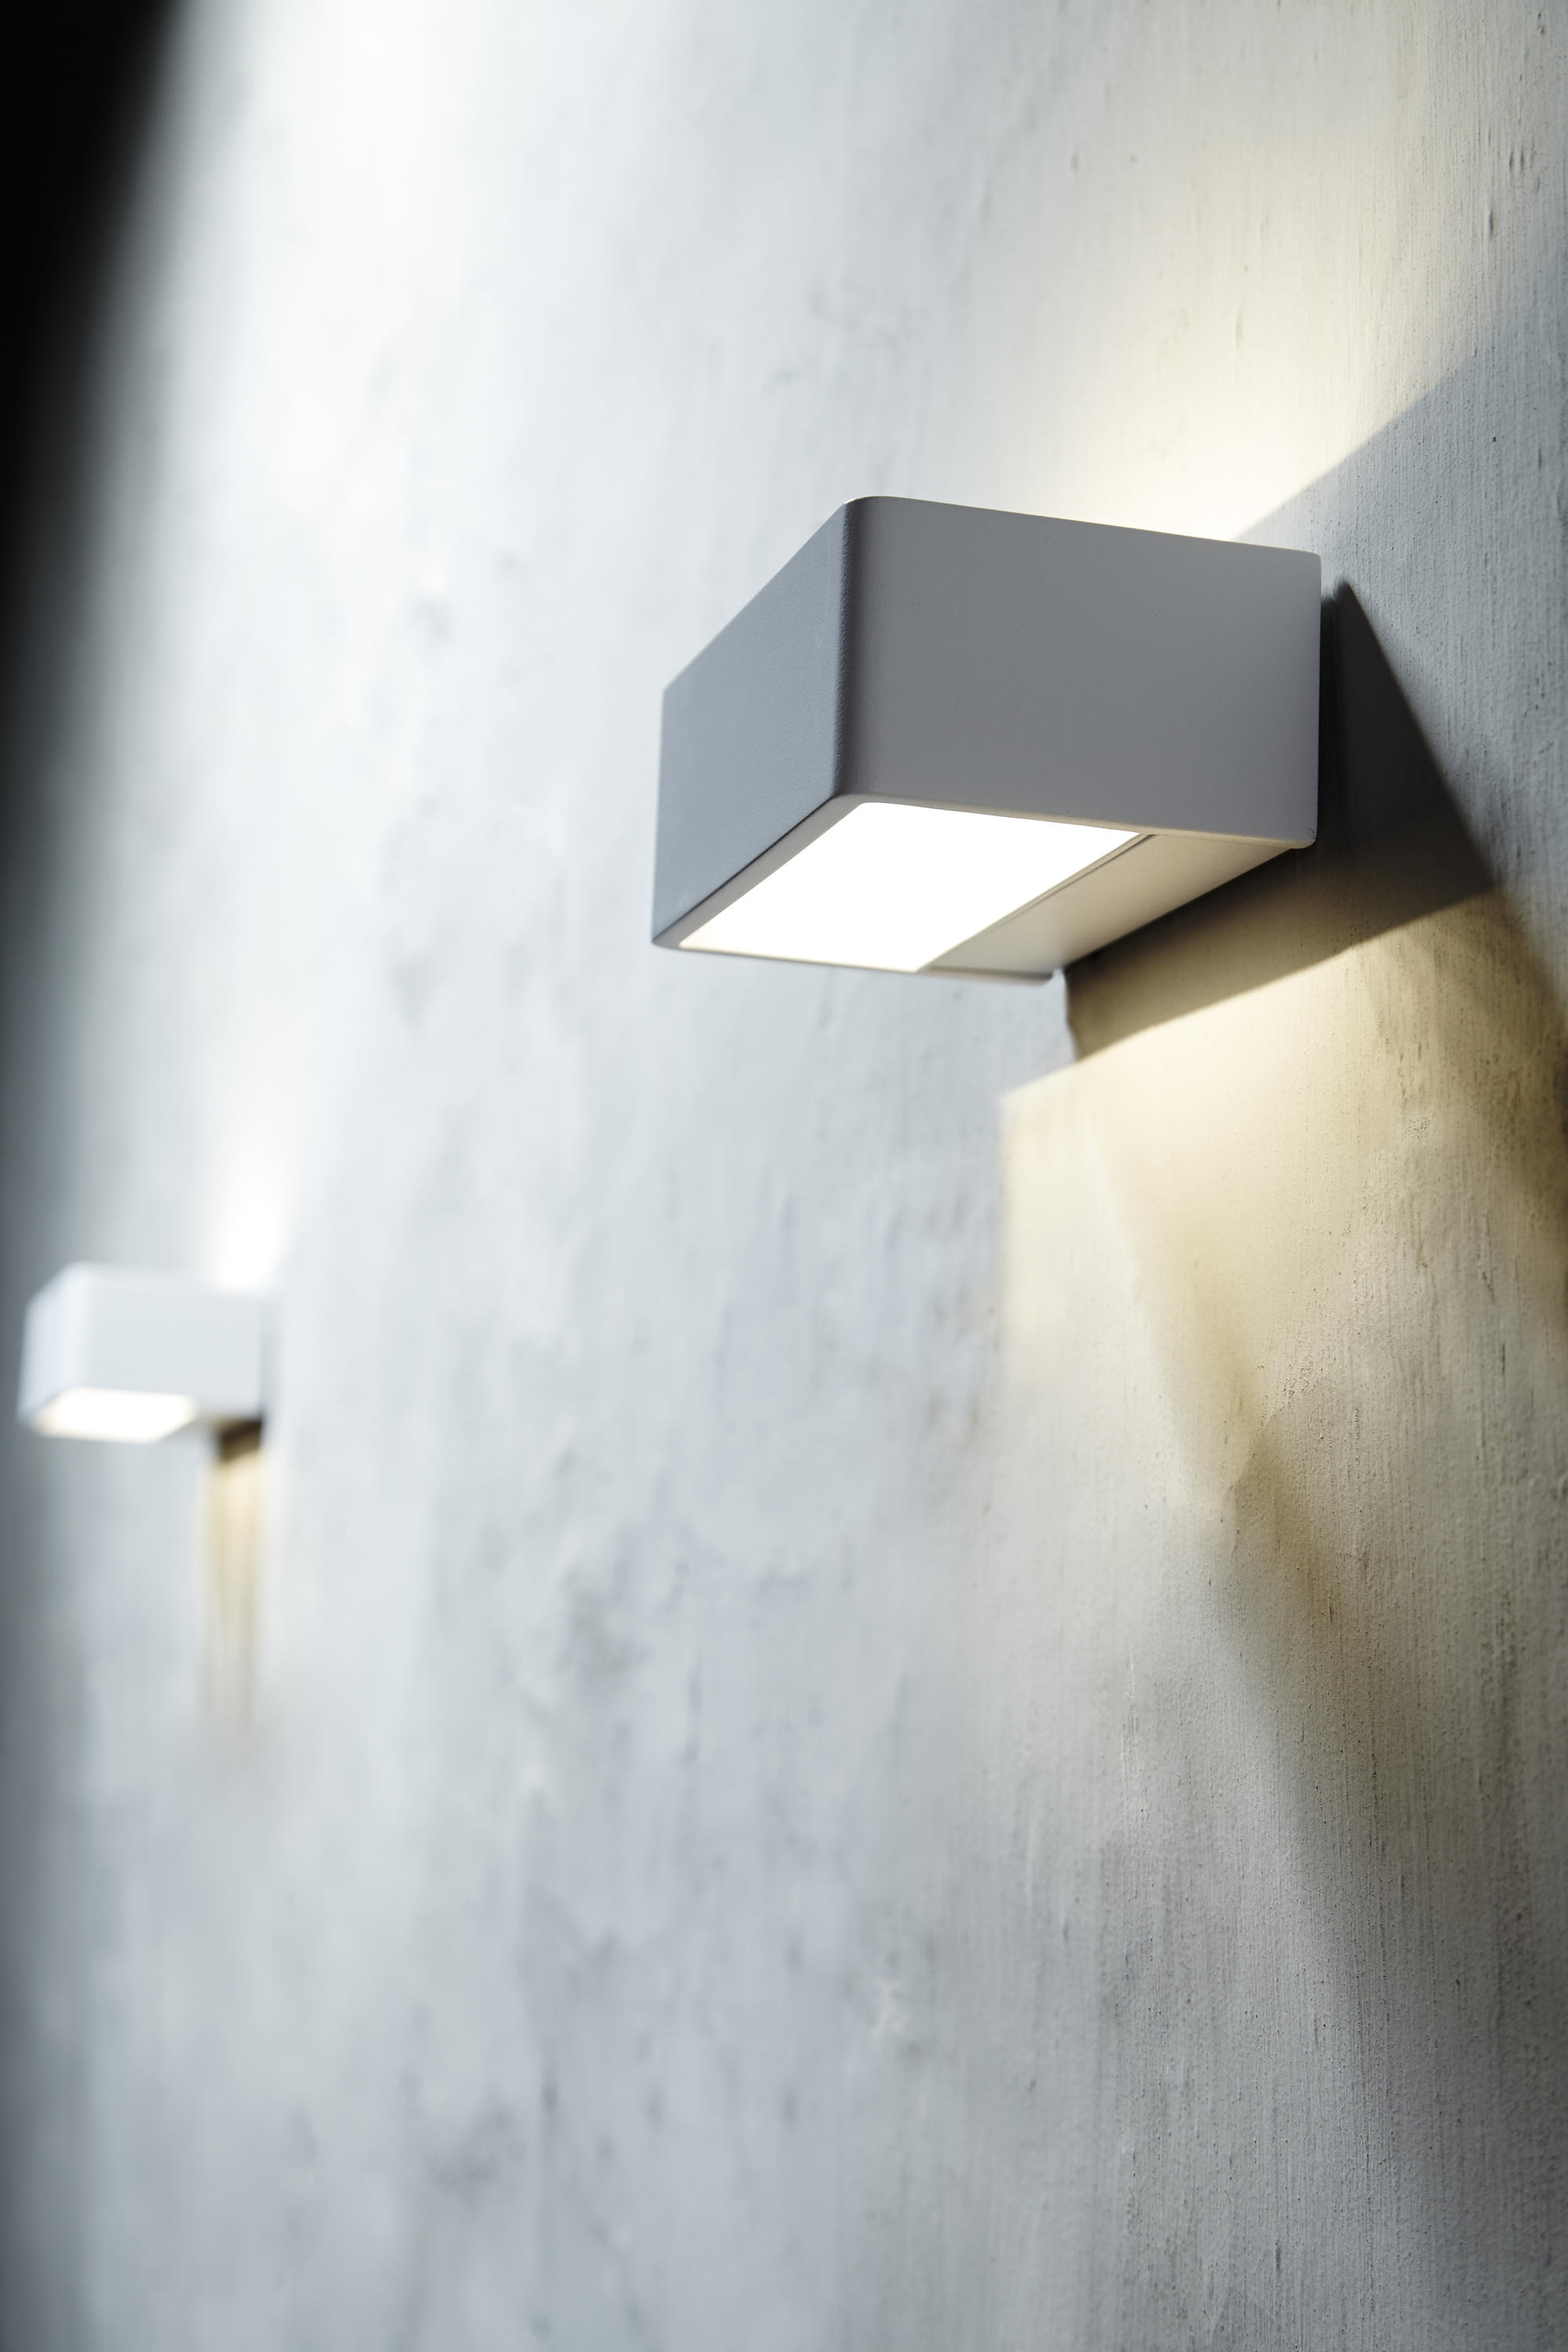 Lamp Wall Double Light Fixture Wall Lights From Inbani Architonic